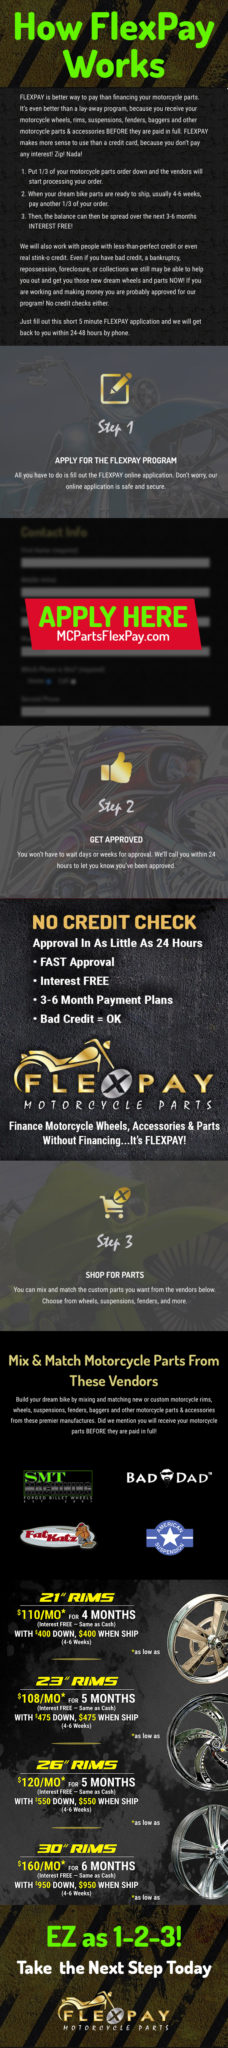 how flexpay works, a better way to pay for motorcycle parts than traditional financing options